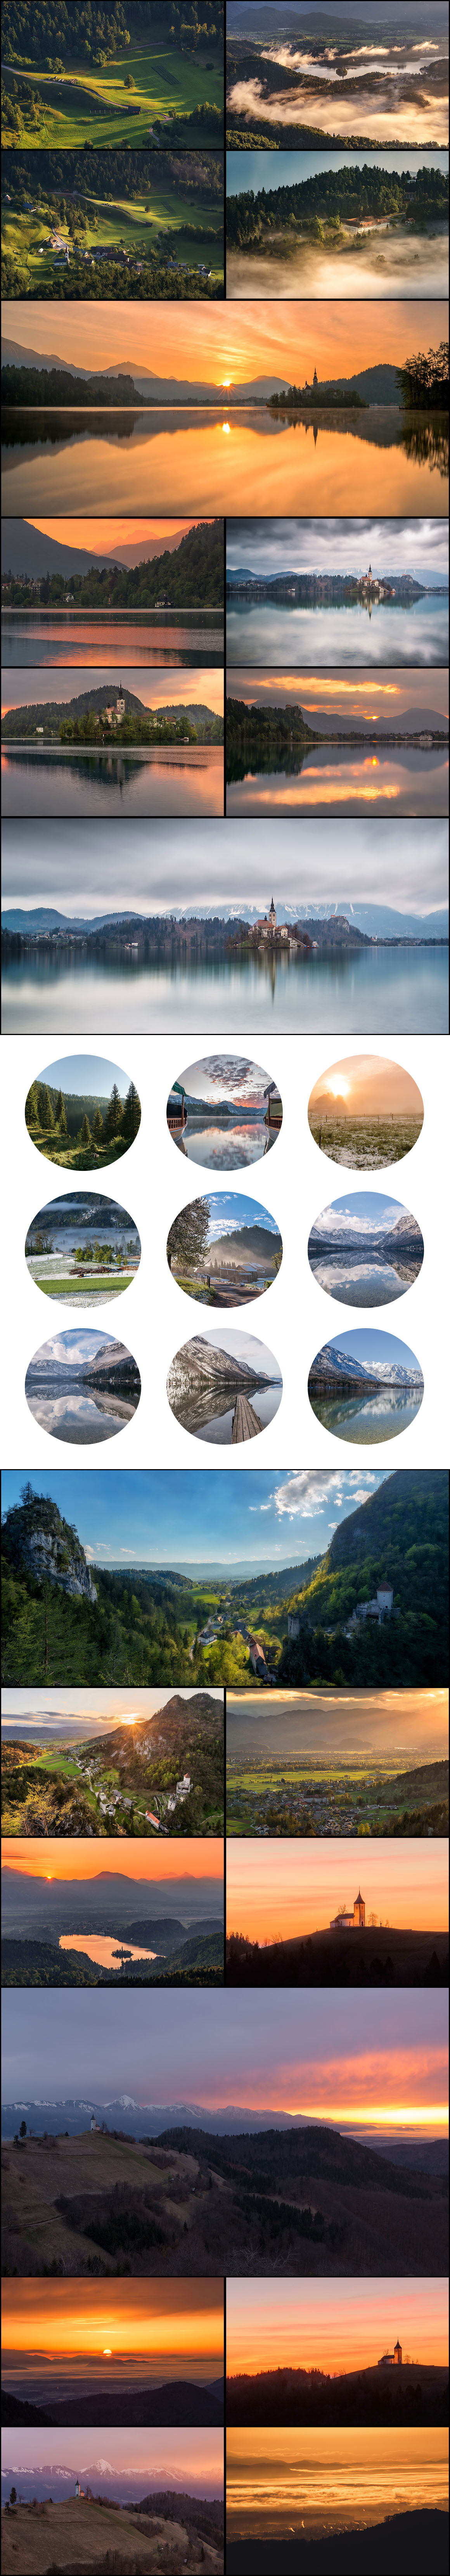 Ultimate Photo Bundle 2016 from DreamyPixel – 700+ Images example image 15